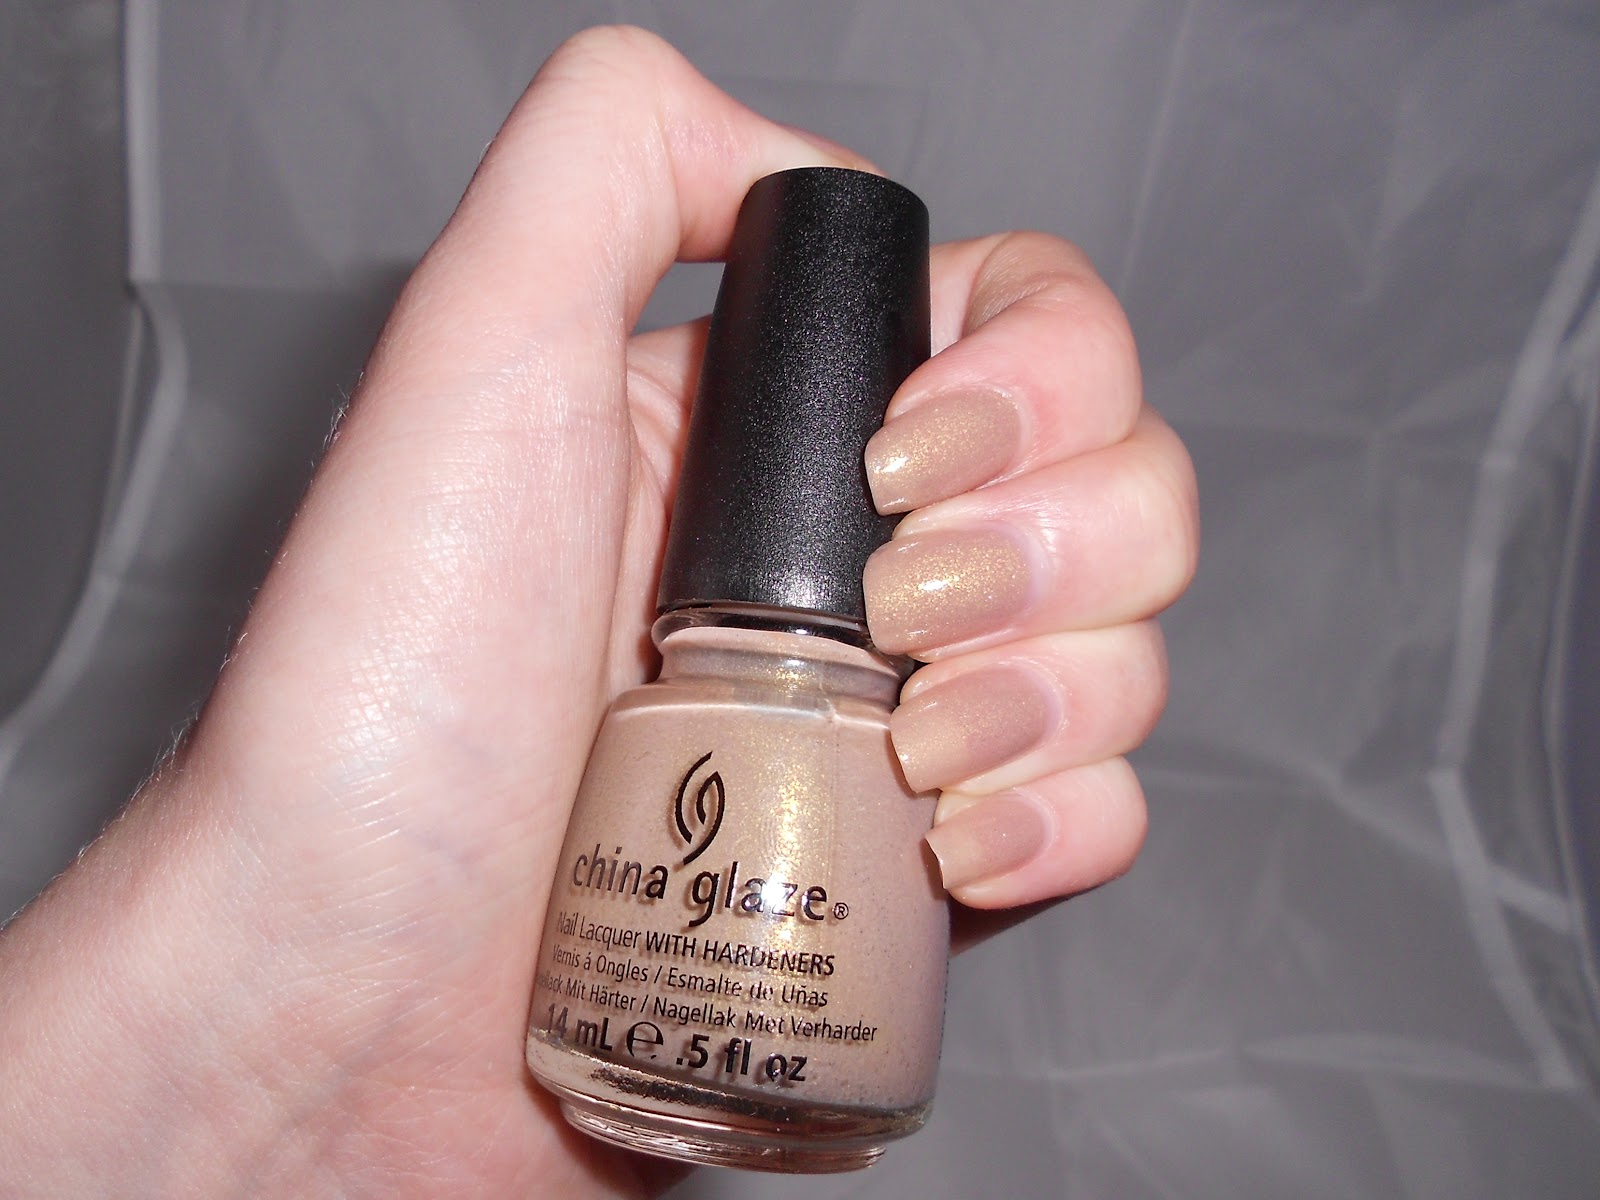 China Glaze Fast Track nail varnish bottle and fingers